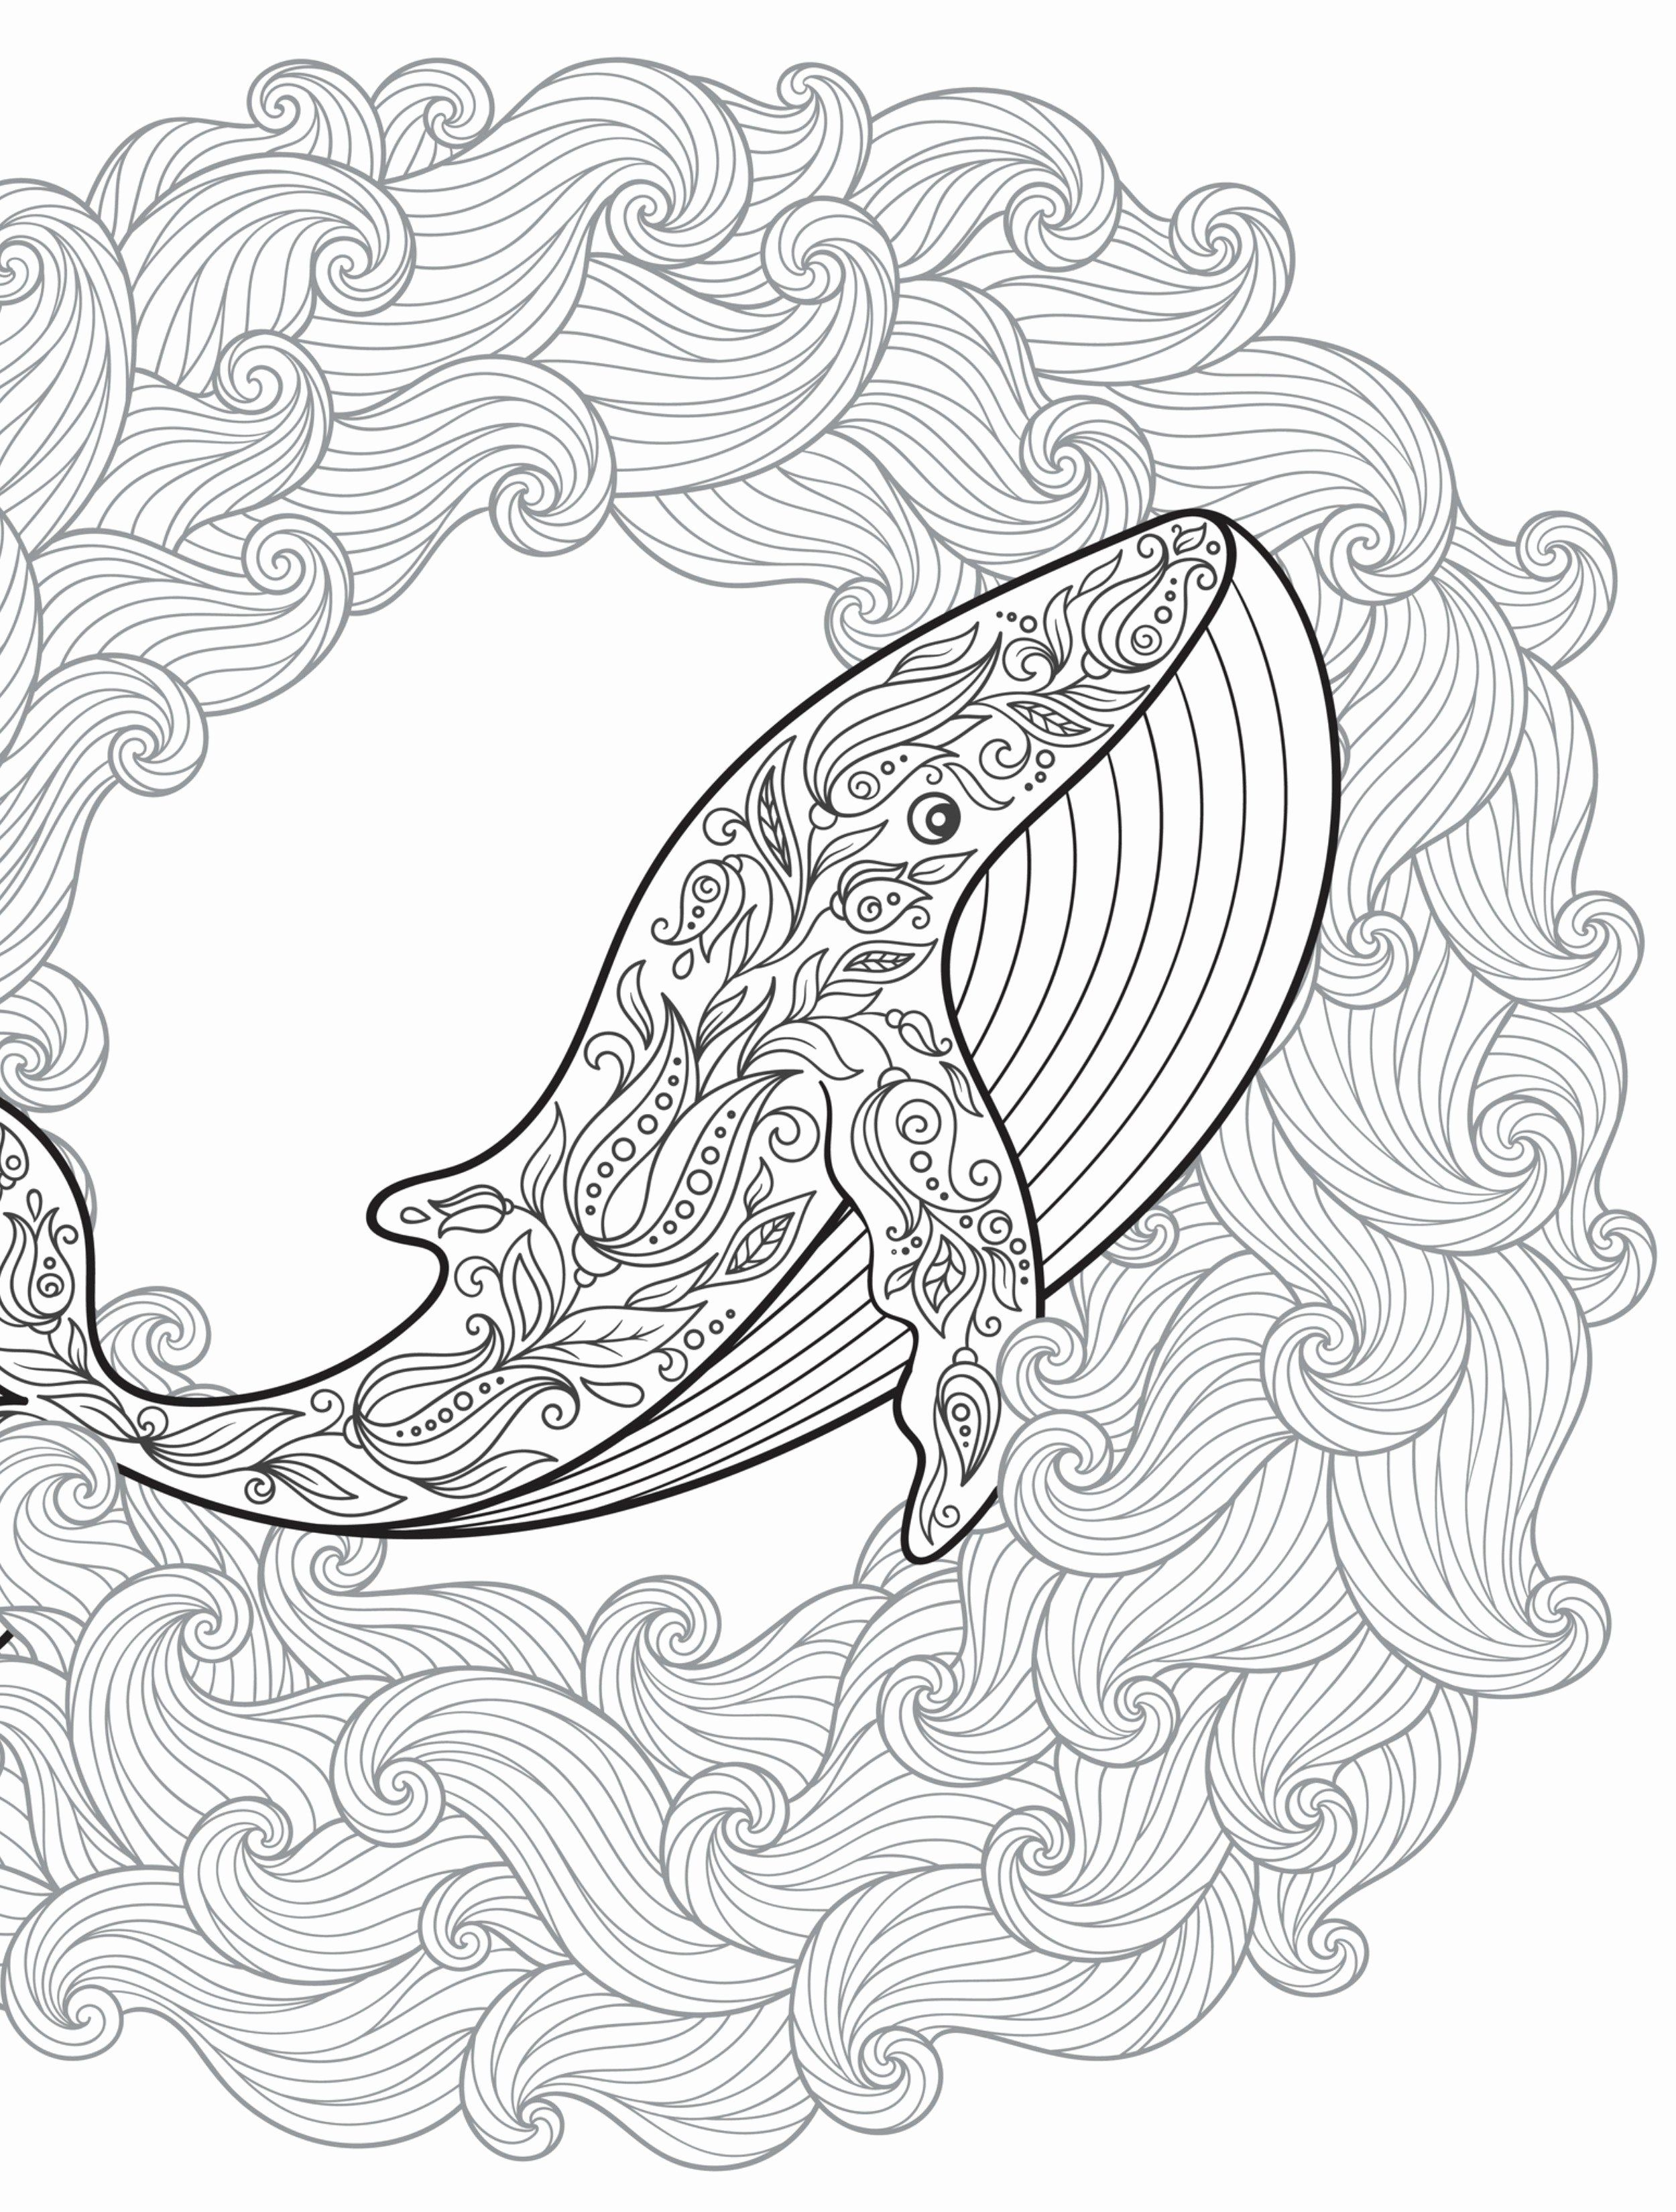 Water Drop Coloring Pages Best Of Pin On Adult Coloring Buku